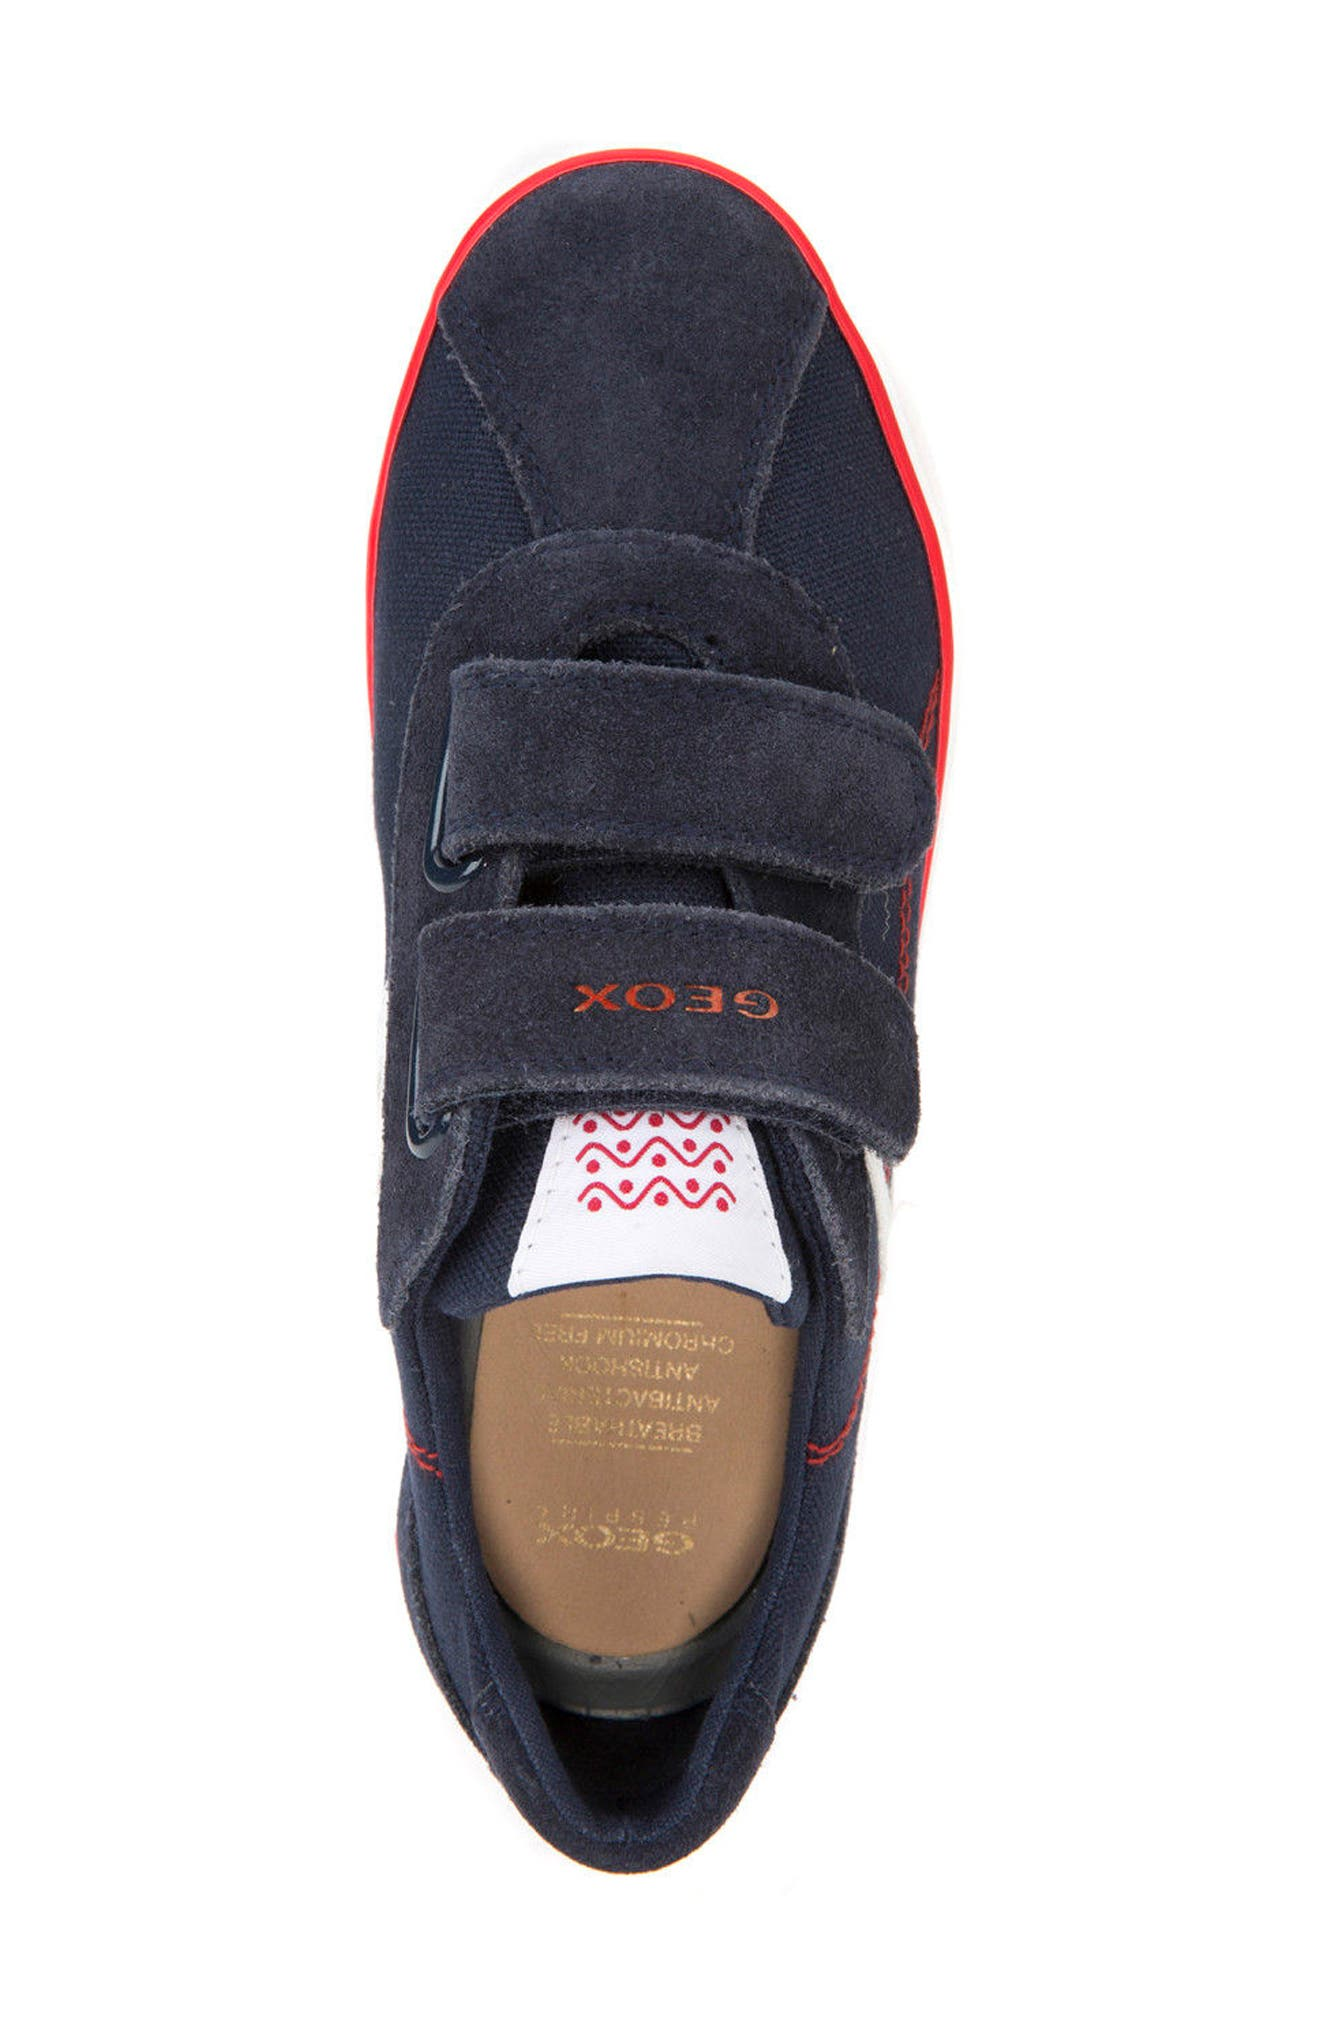 Kilwi Low Top Sneaker,                             Alternate thumbnail 5, color,                             NAVY/ RED